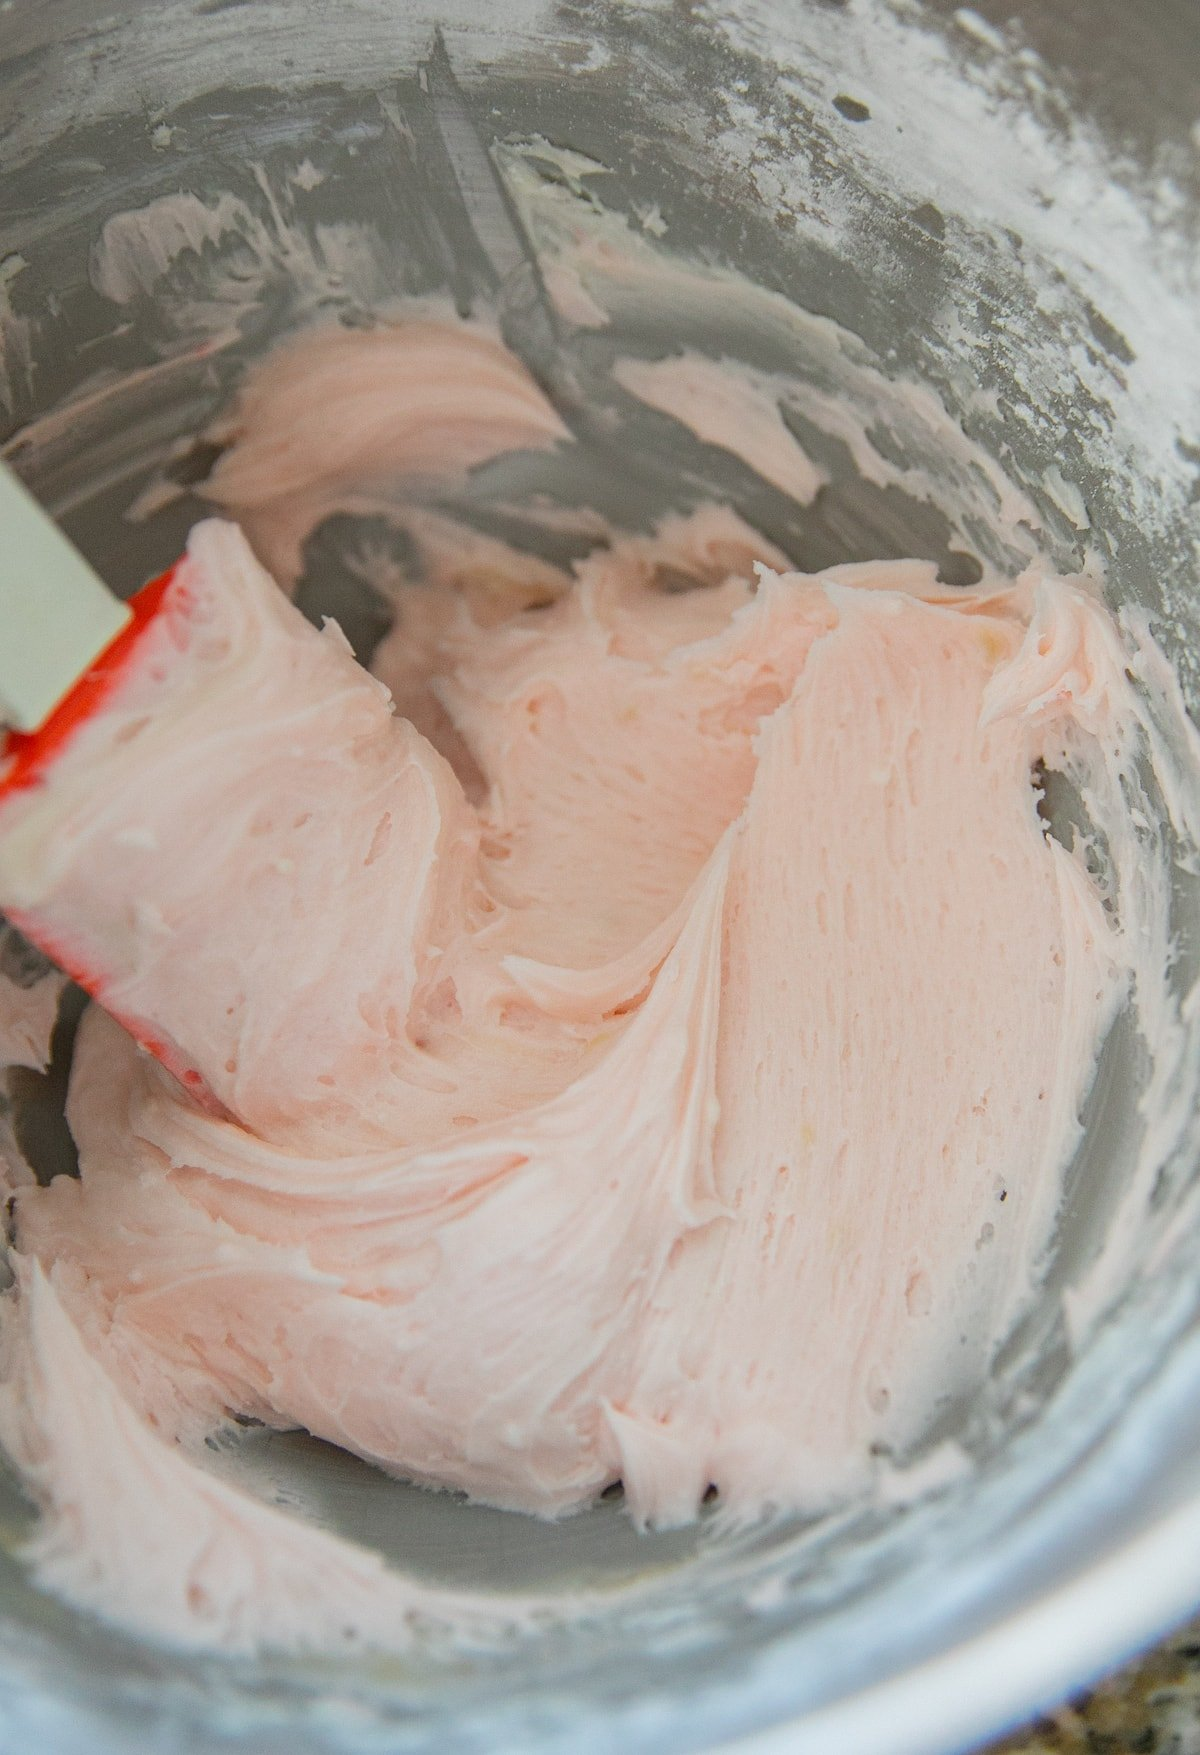 pink frosting in bowl